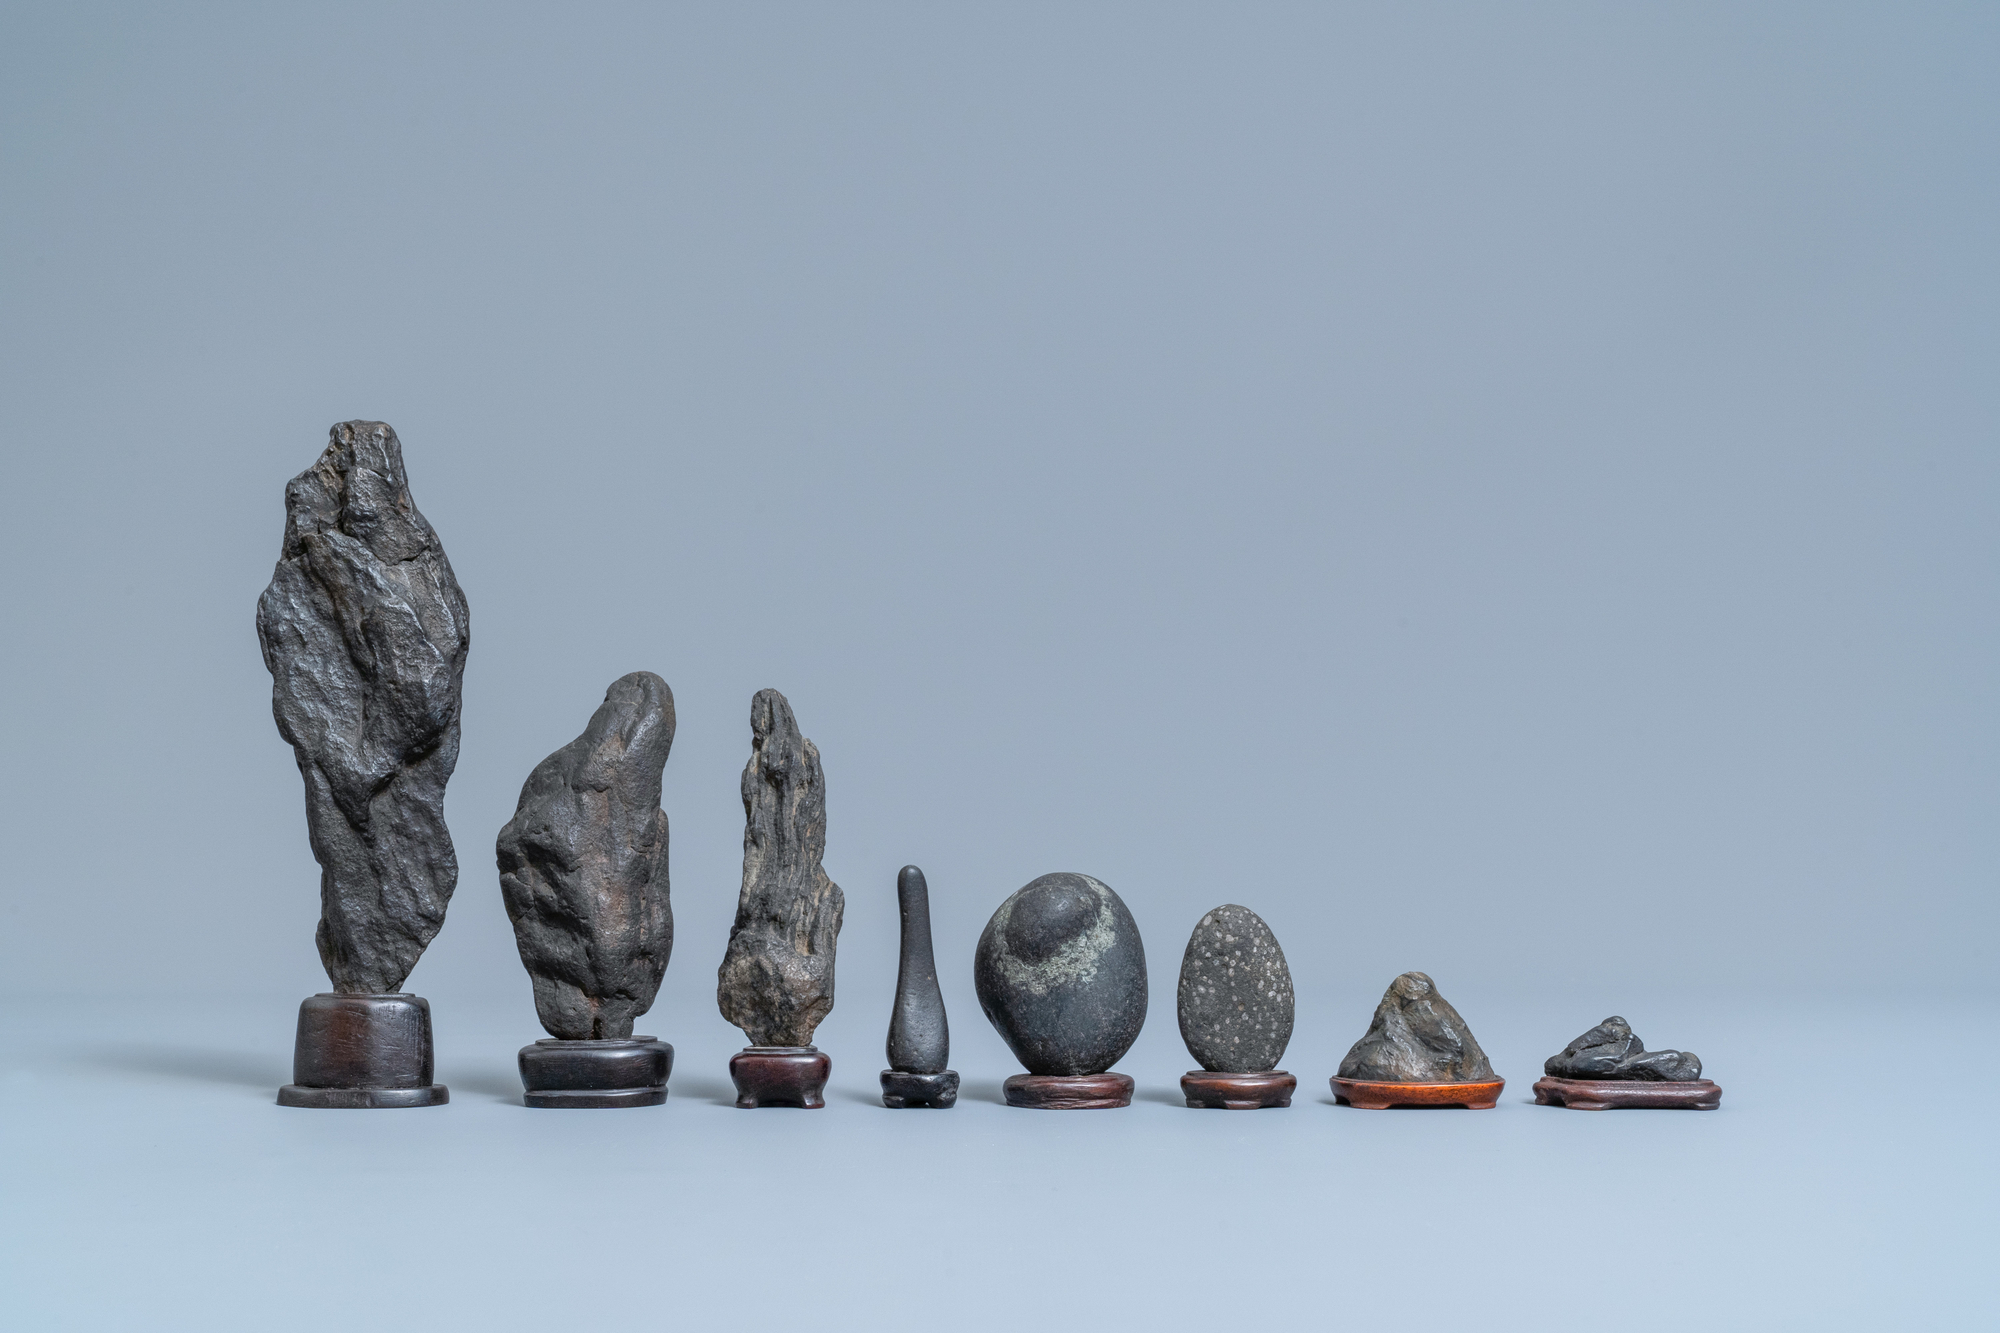 Eight Chinese scholar's rocks on wooden stands, 19/20th C. - Image 2 of 7